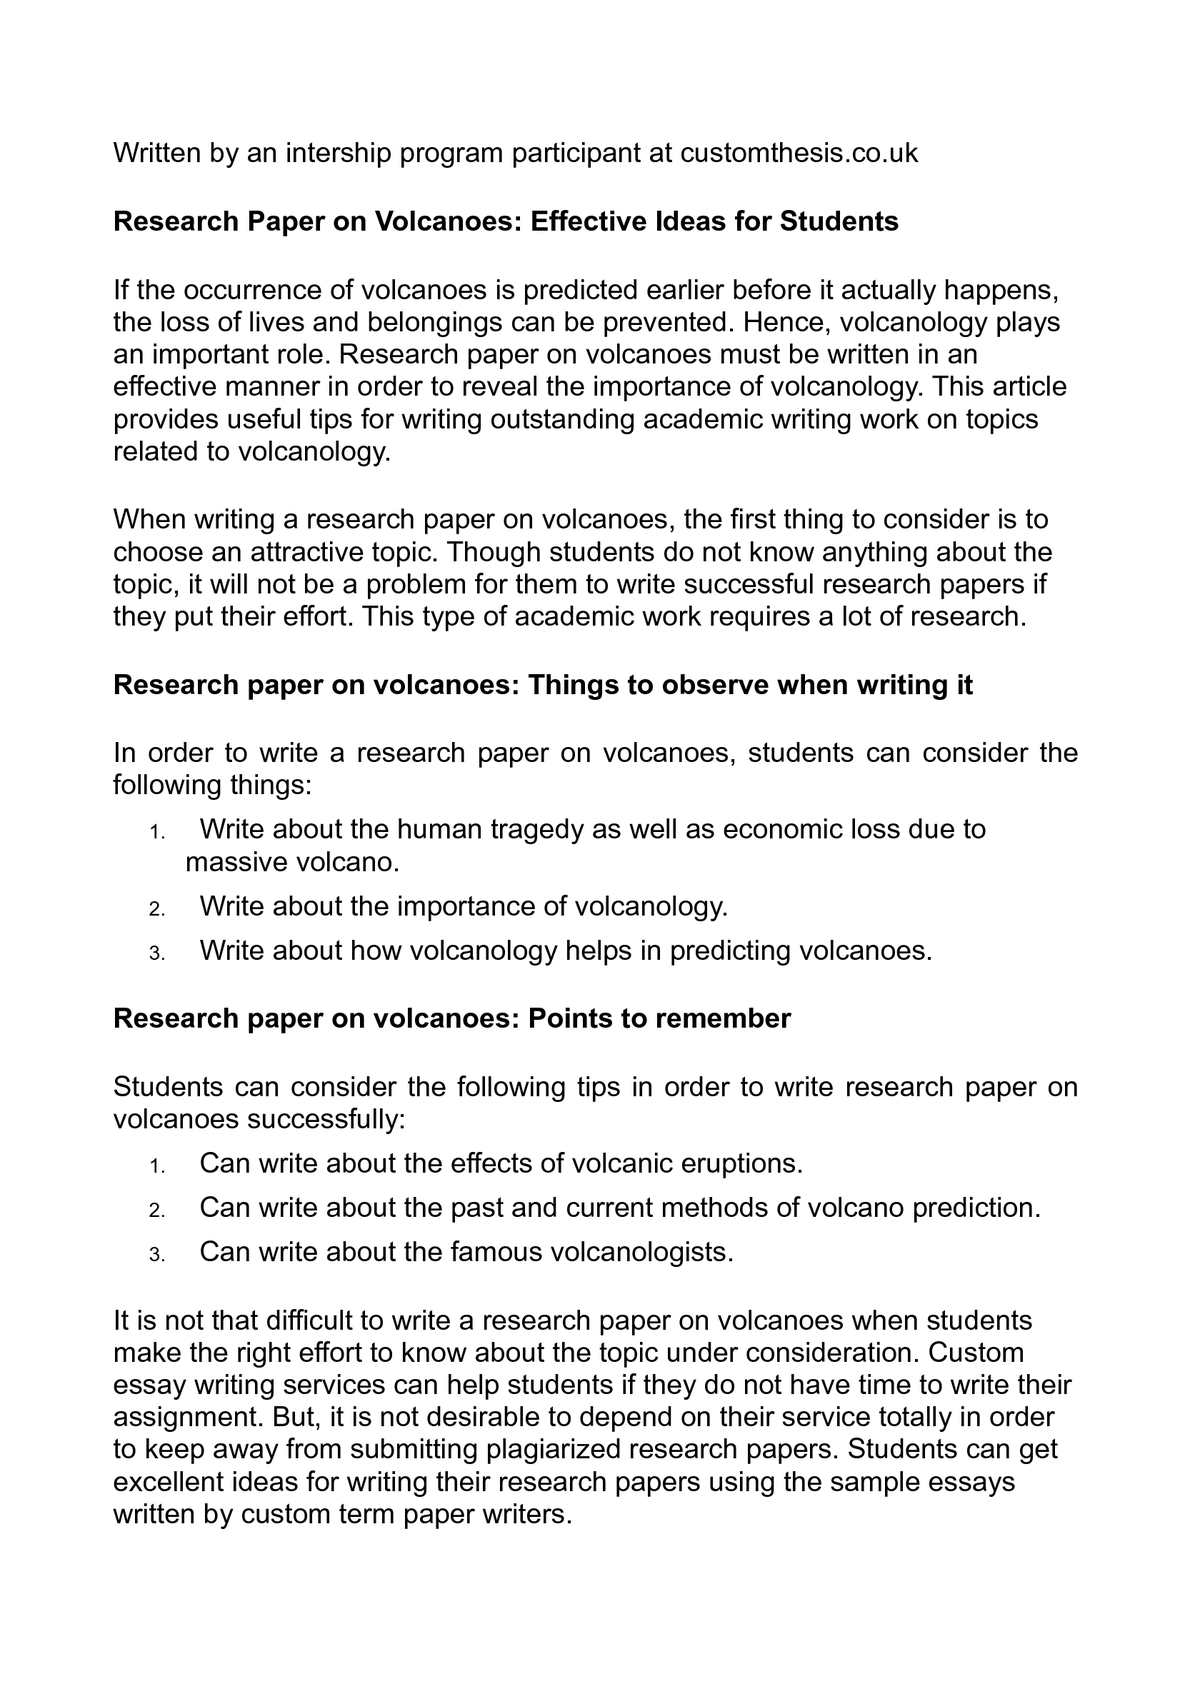 academic writing tips research papers Those students who have some good experience in writing academic papers like research papers, academic essays, term papers, and so on, have some idea about formatting styles, meaning special requirements and guidelines as to formatting their academic papers.